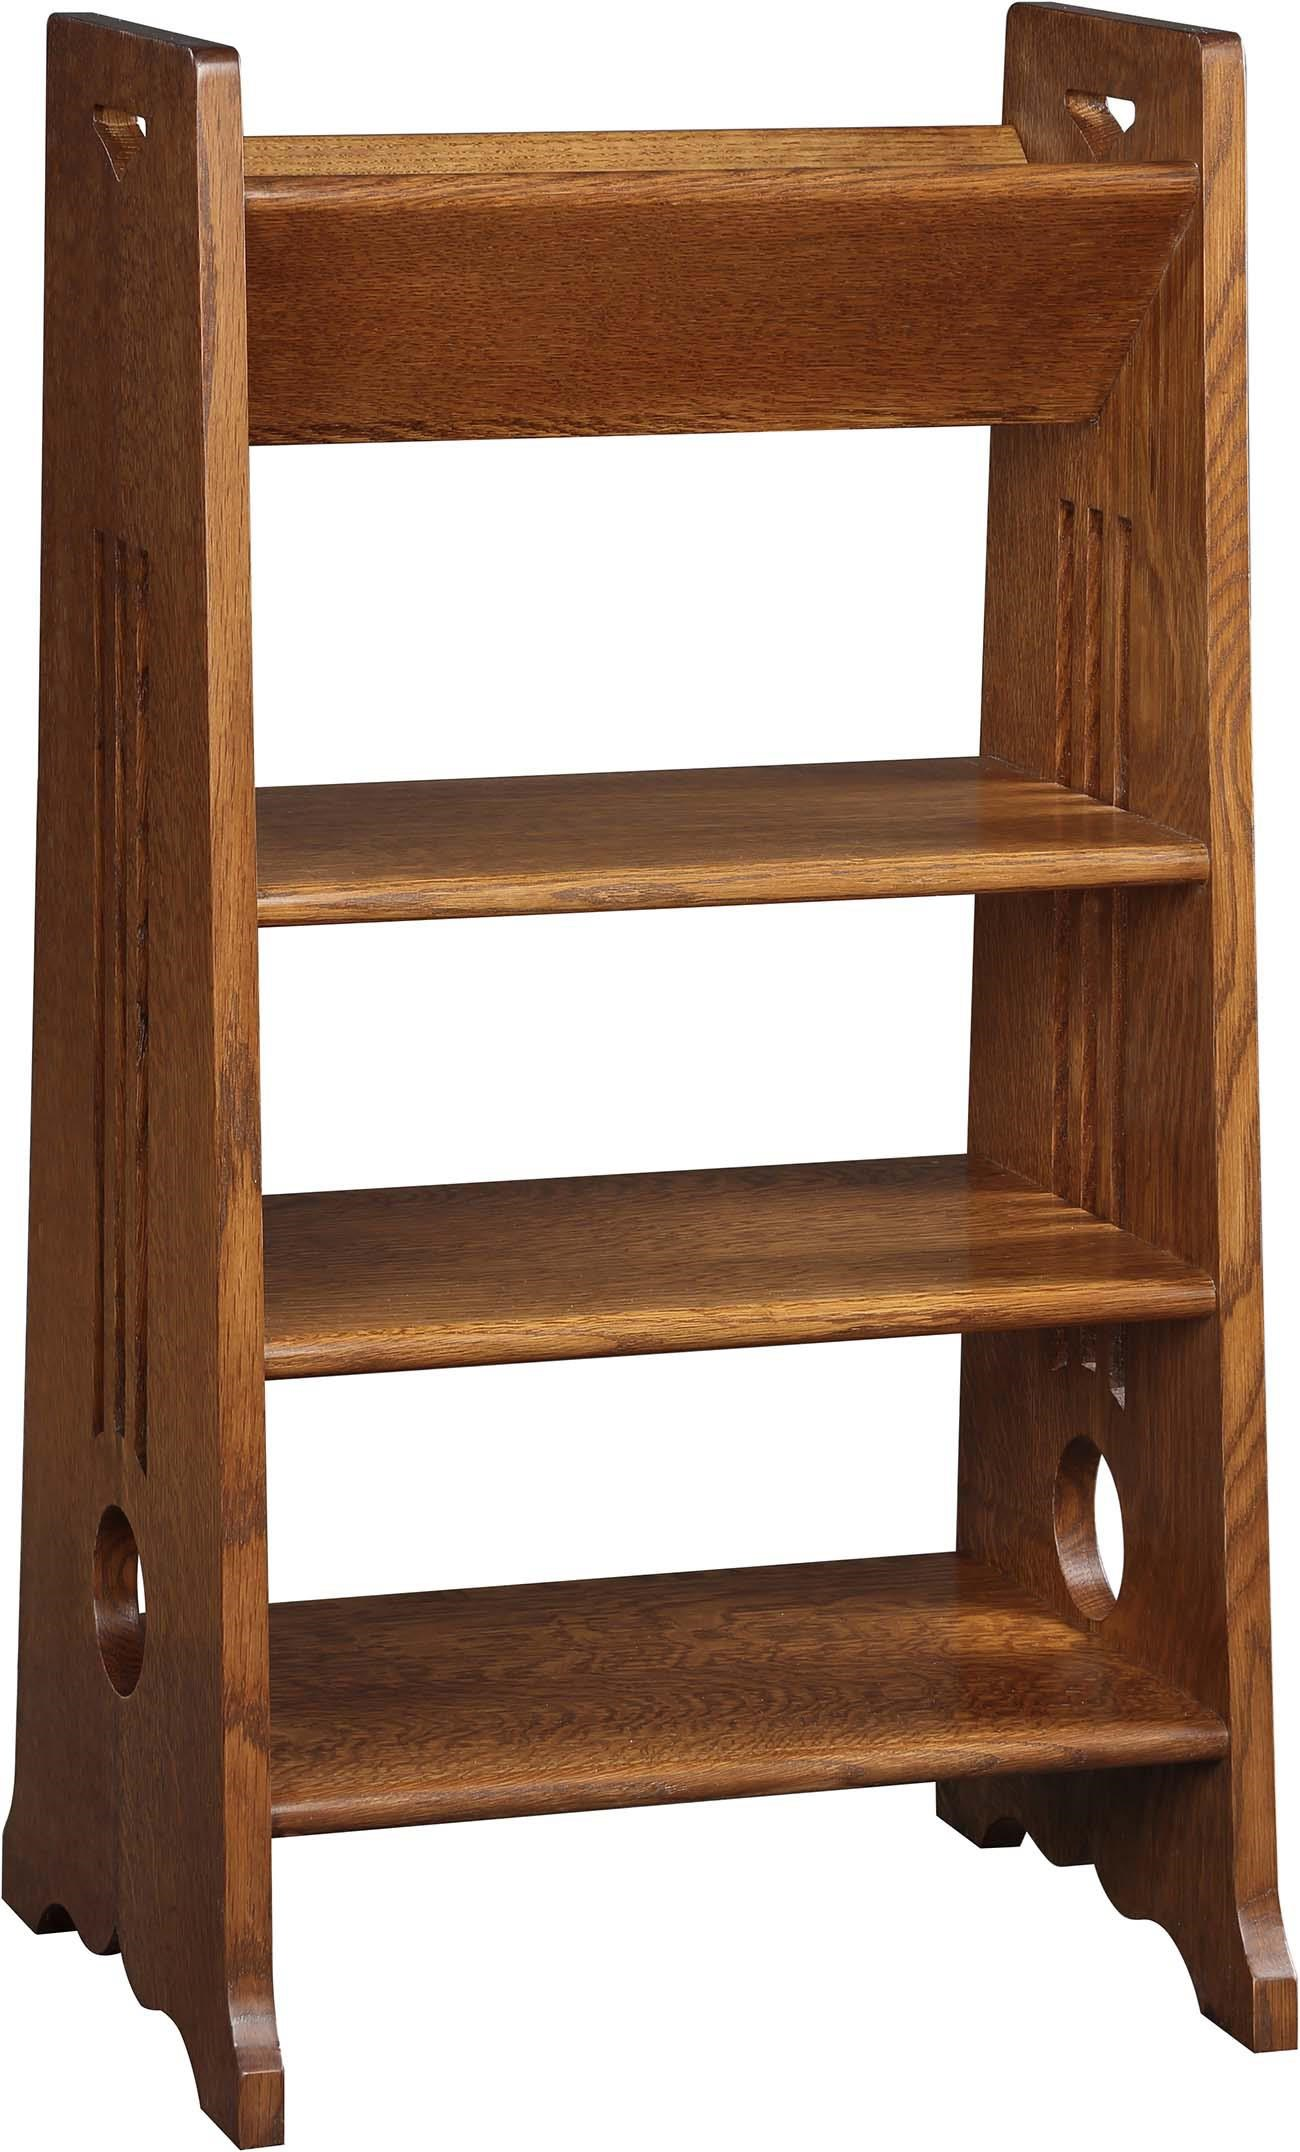 Little Treasures Bookcase by Stickley at Sprintz Furniture